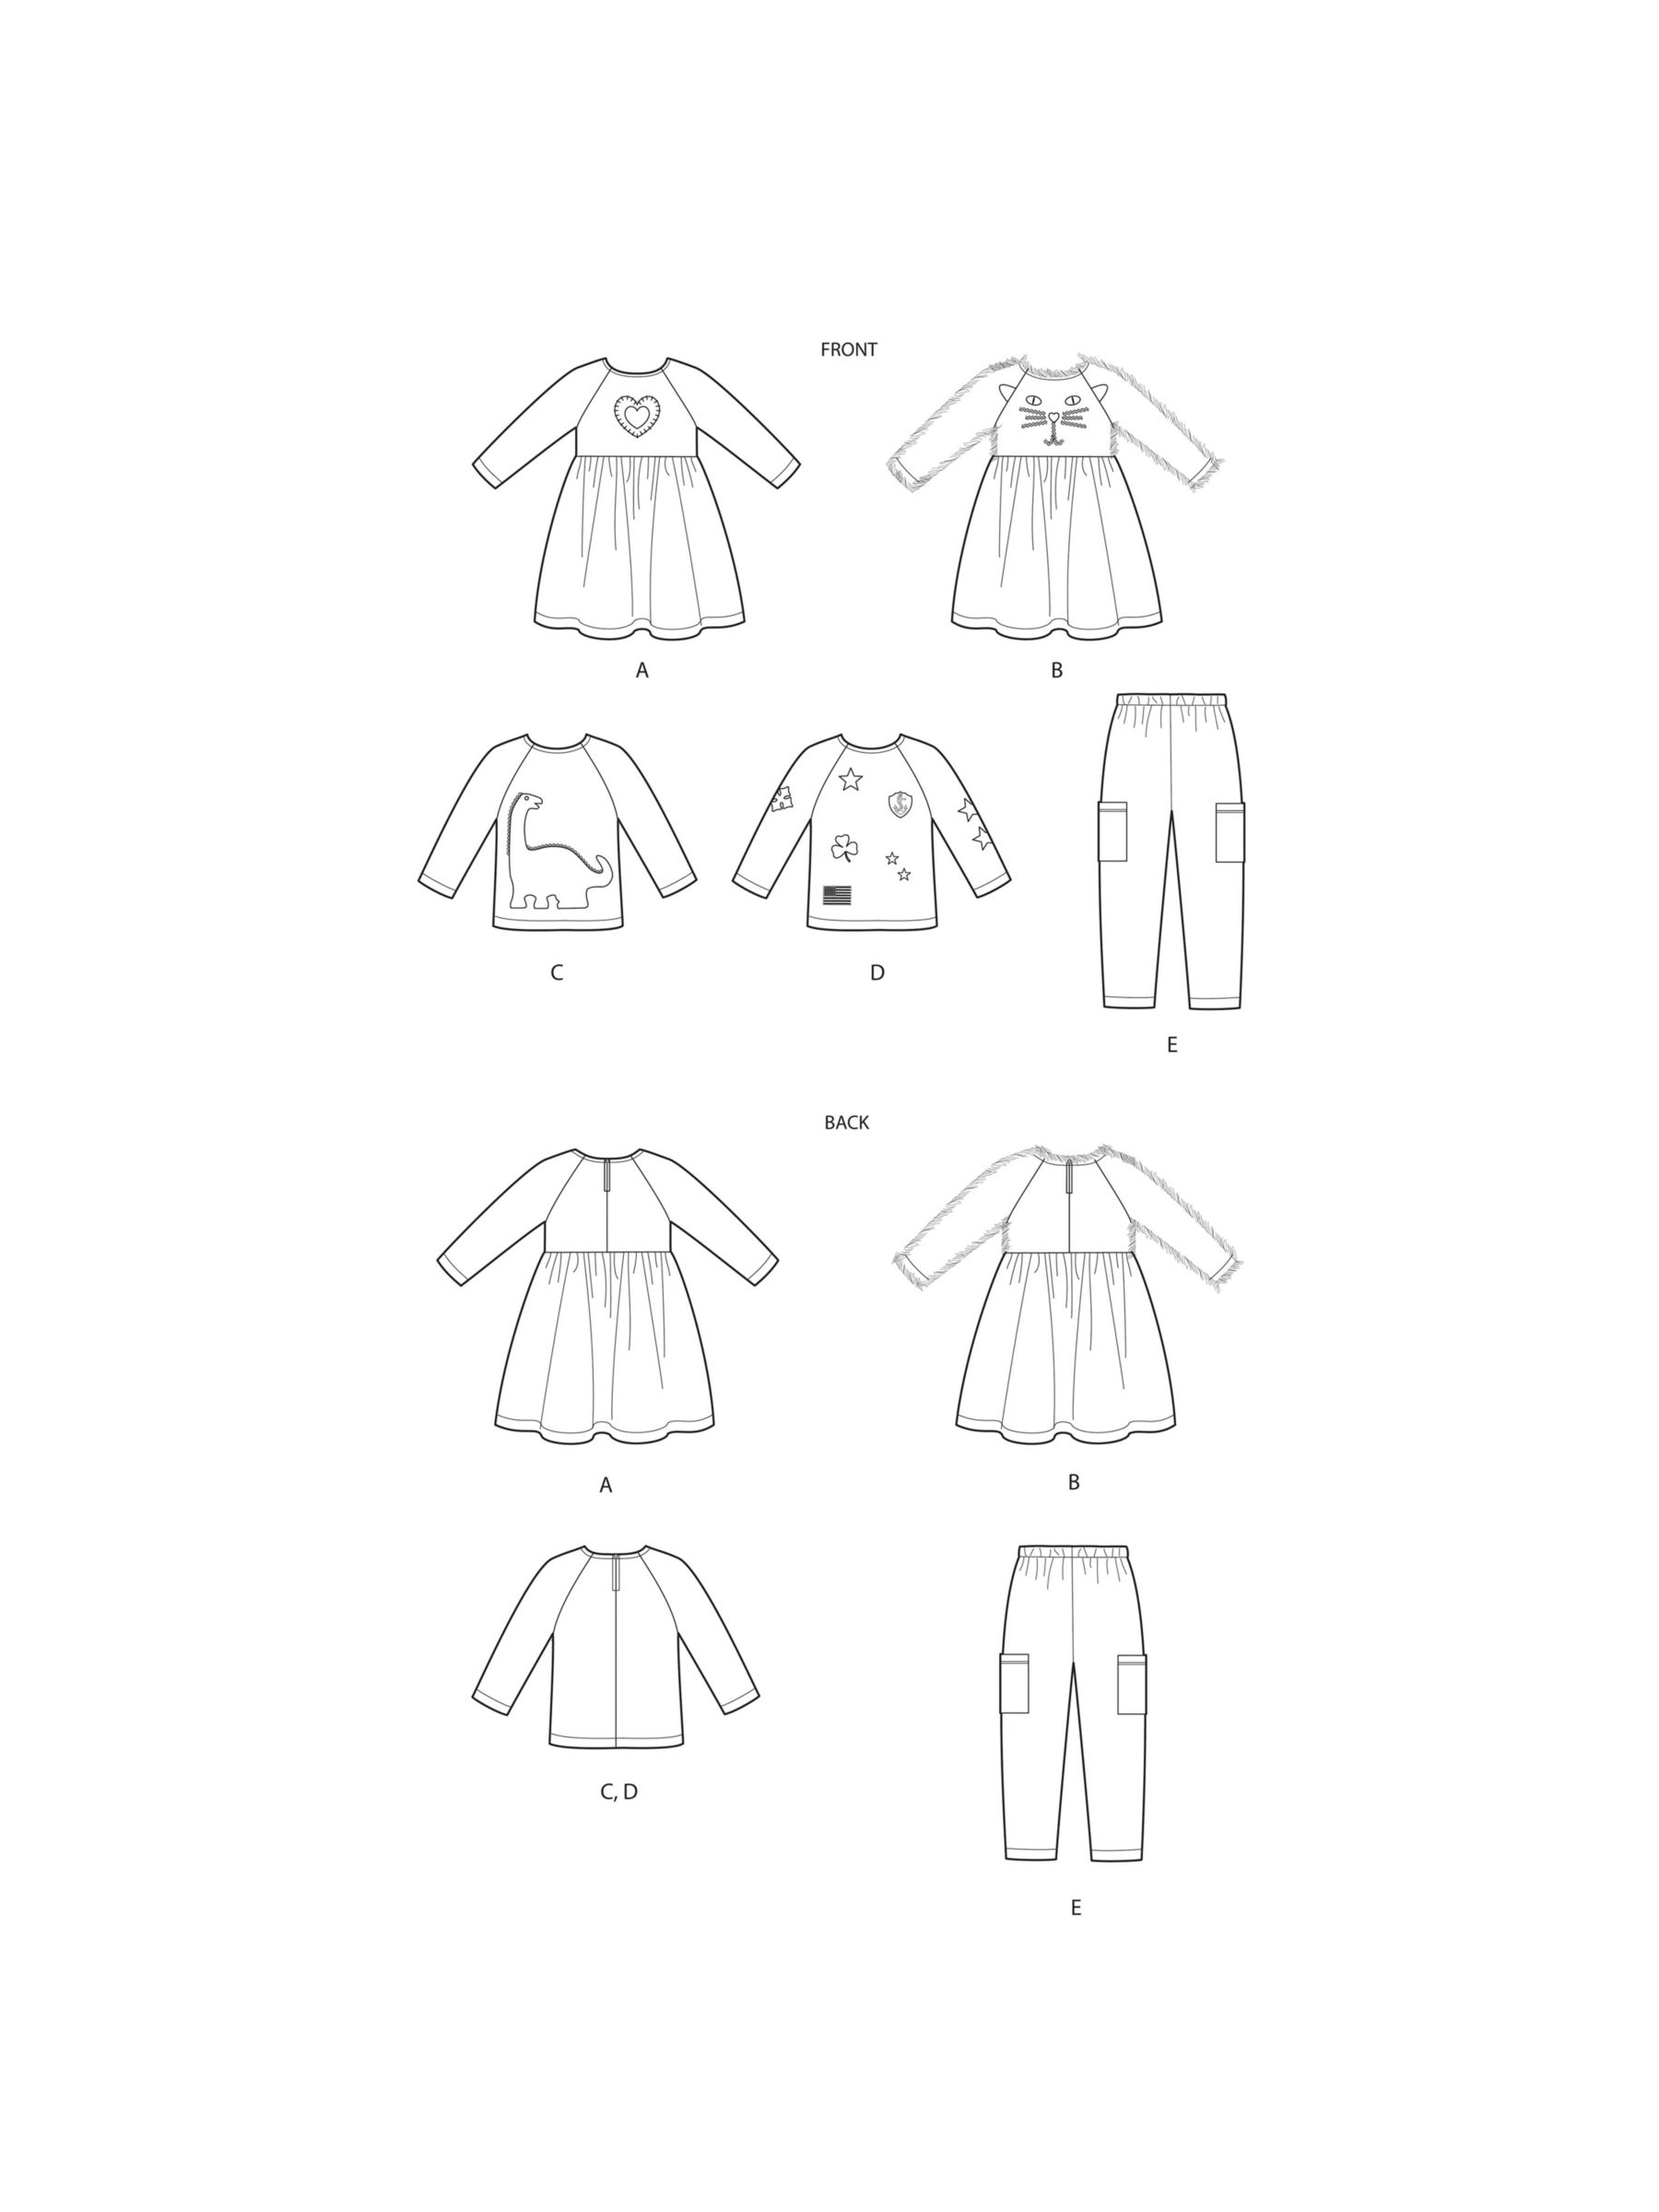 Simplicity Simplicity Toddlers' Sportswear Sewing Pattern, 9023, 6 months-4 years